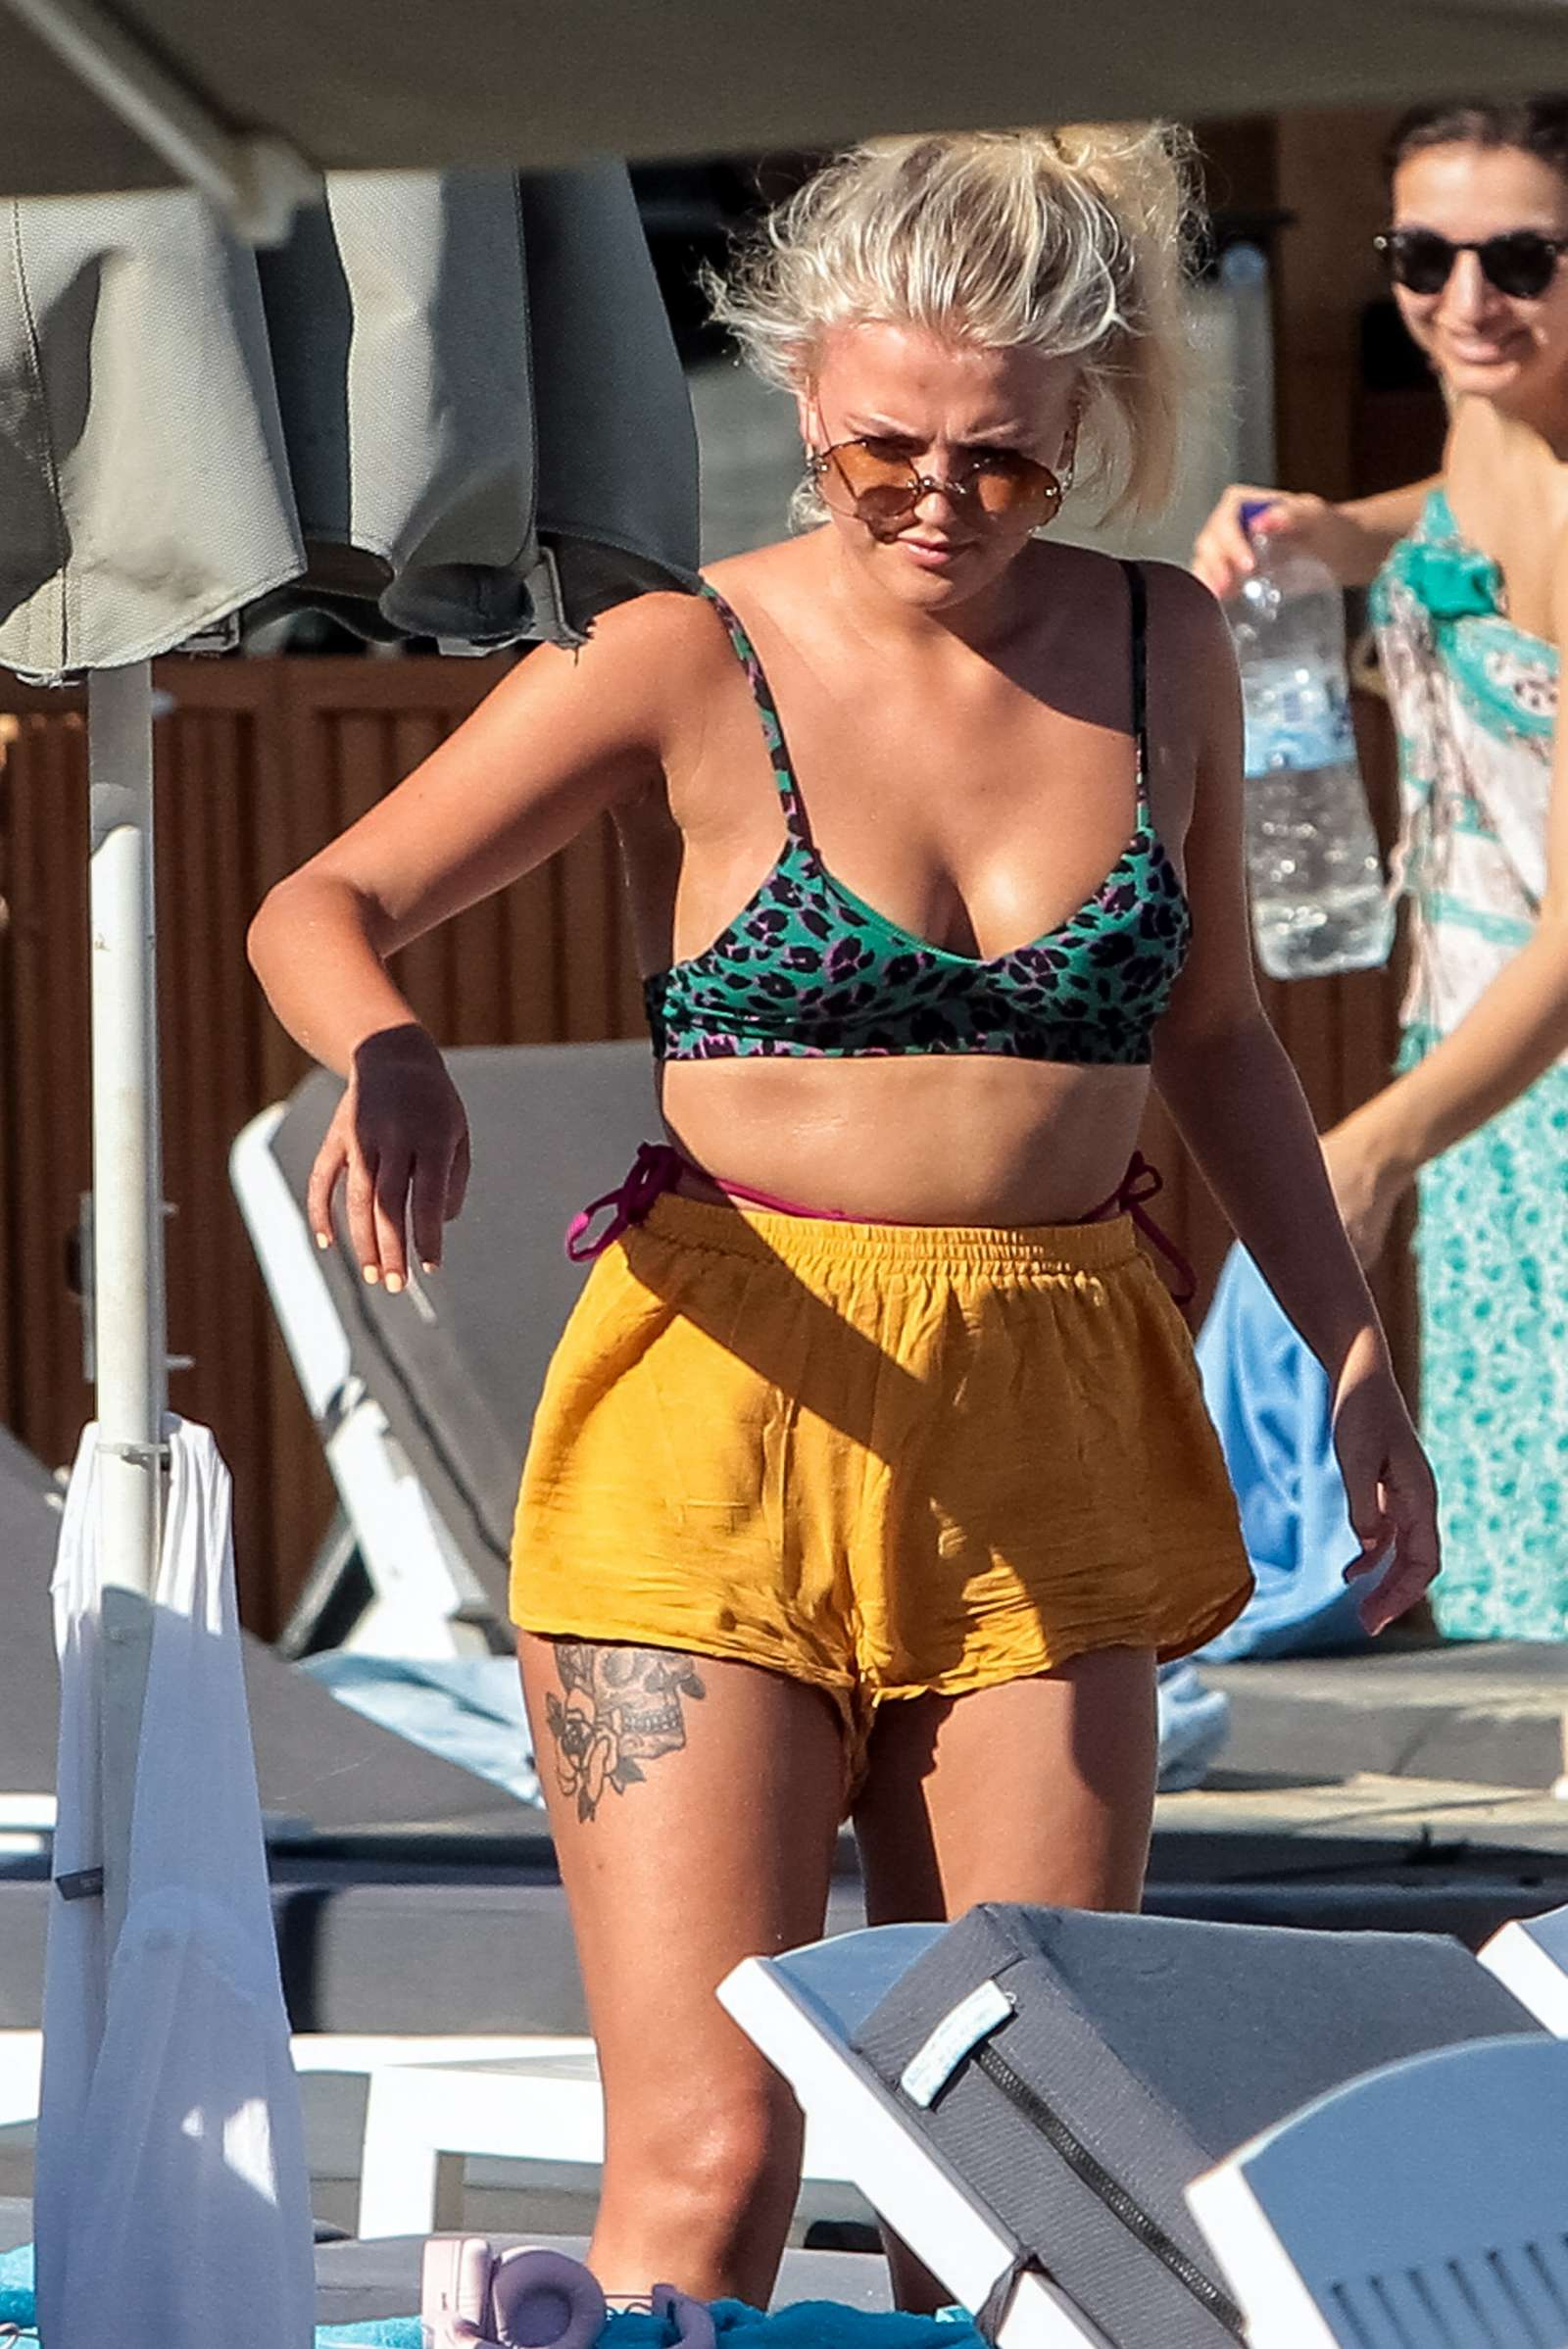 Bikini Lucy Fallon nude (49 photos), Sexy, Paparazzi, Feet, braless 2015